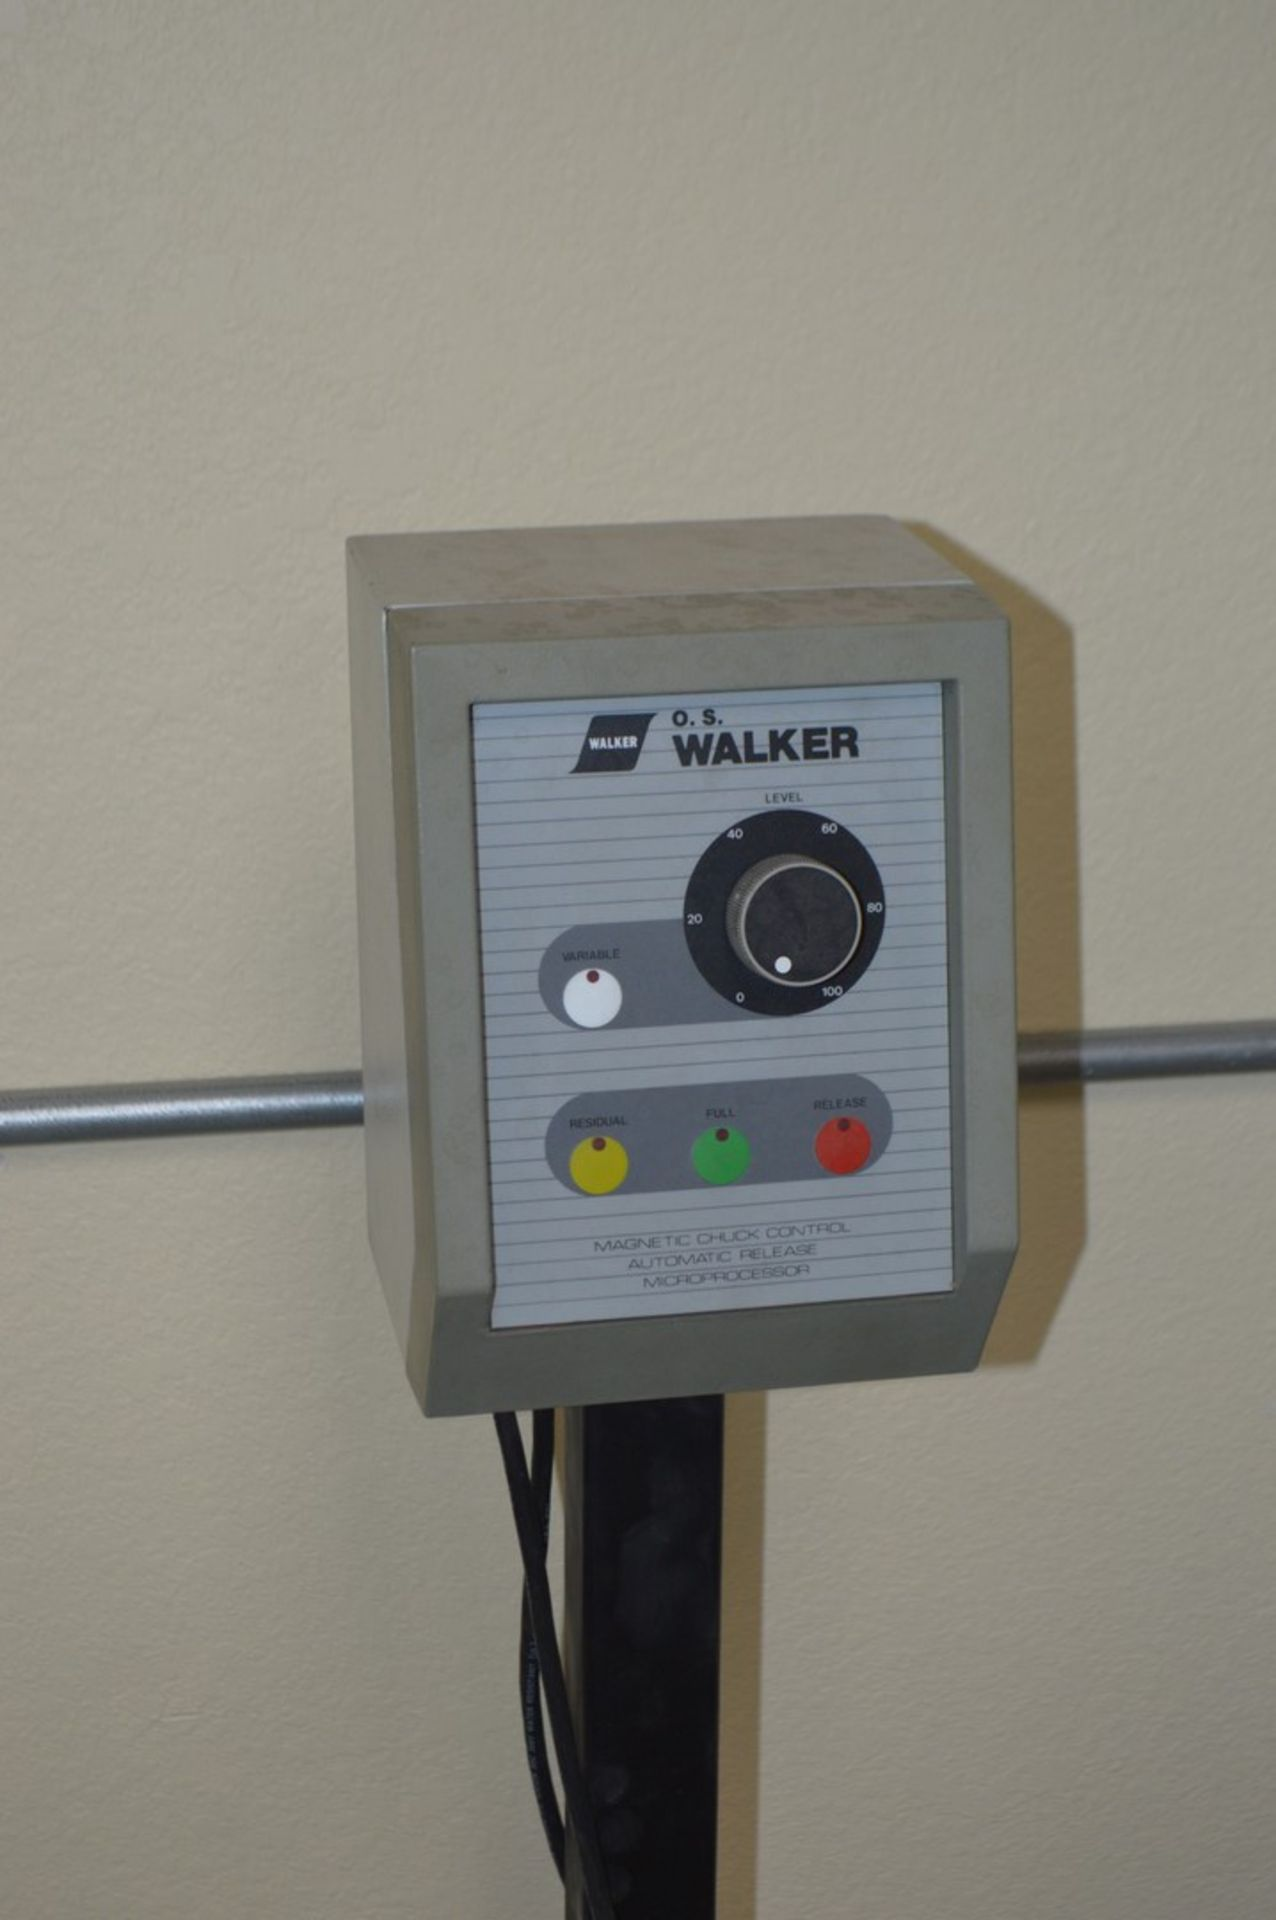 Chevalier FSG618M surface grinder with magnetic chuck, coolant and Walker control unit - Image 3 of 7